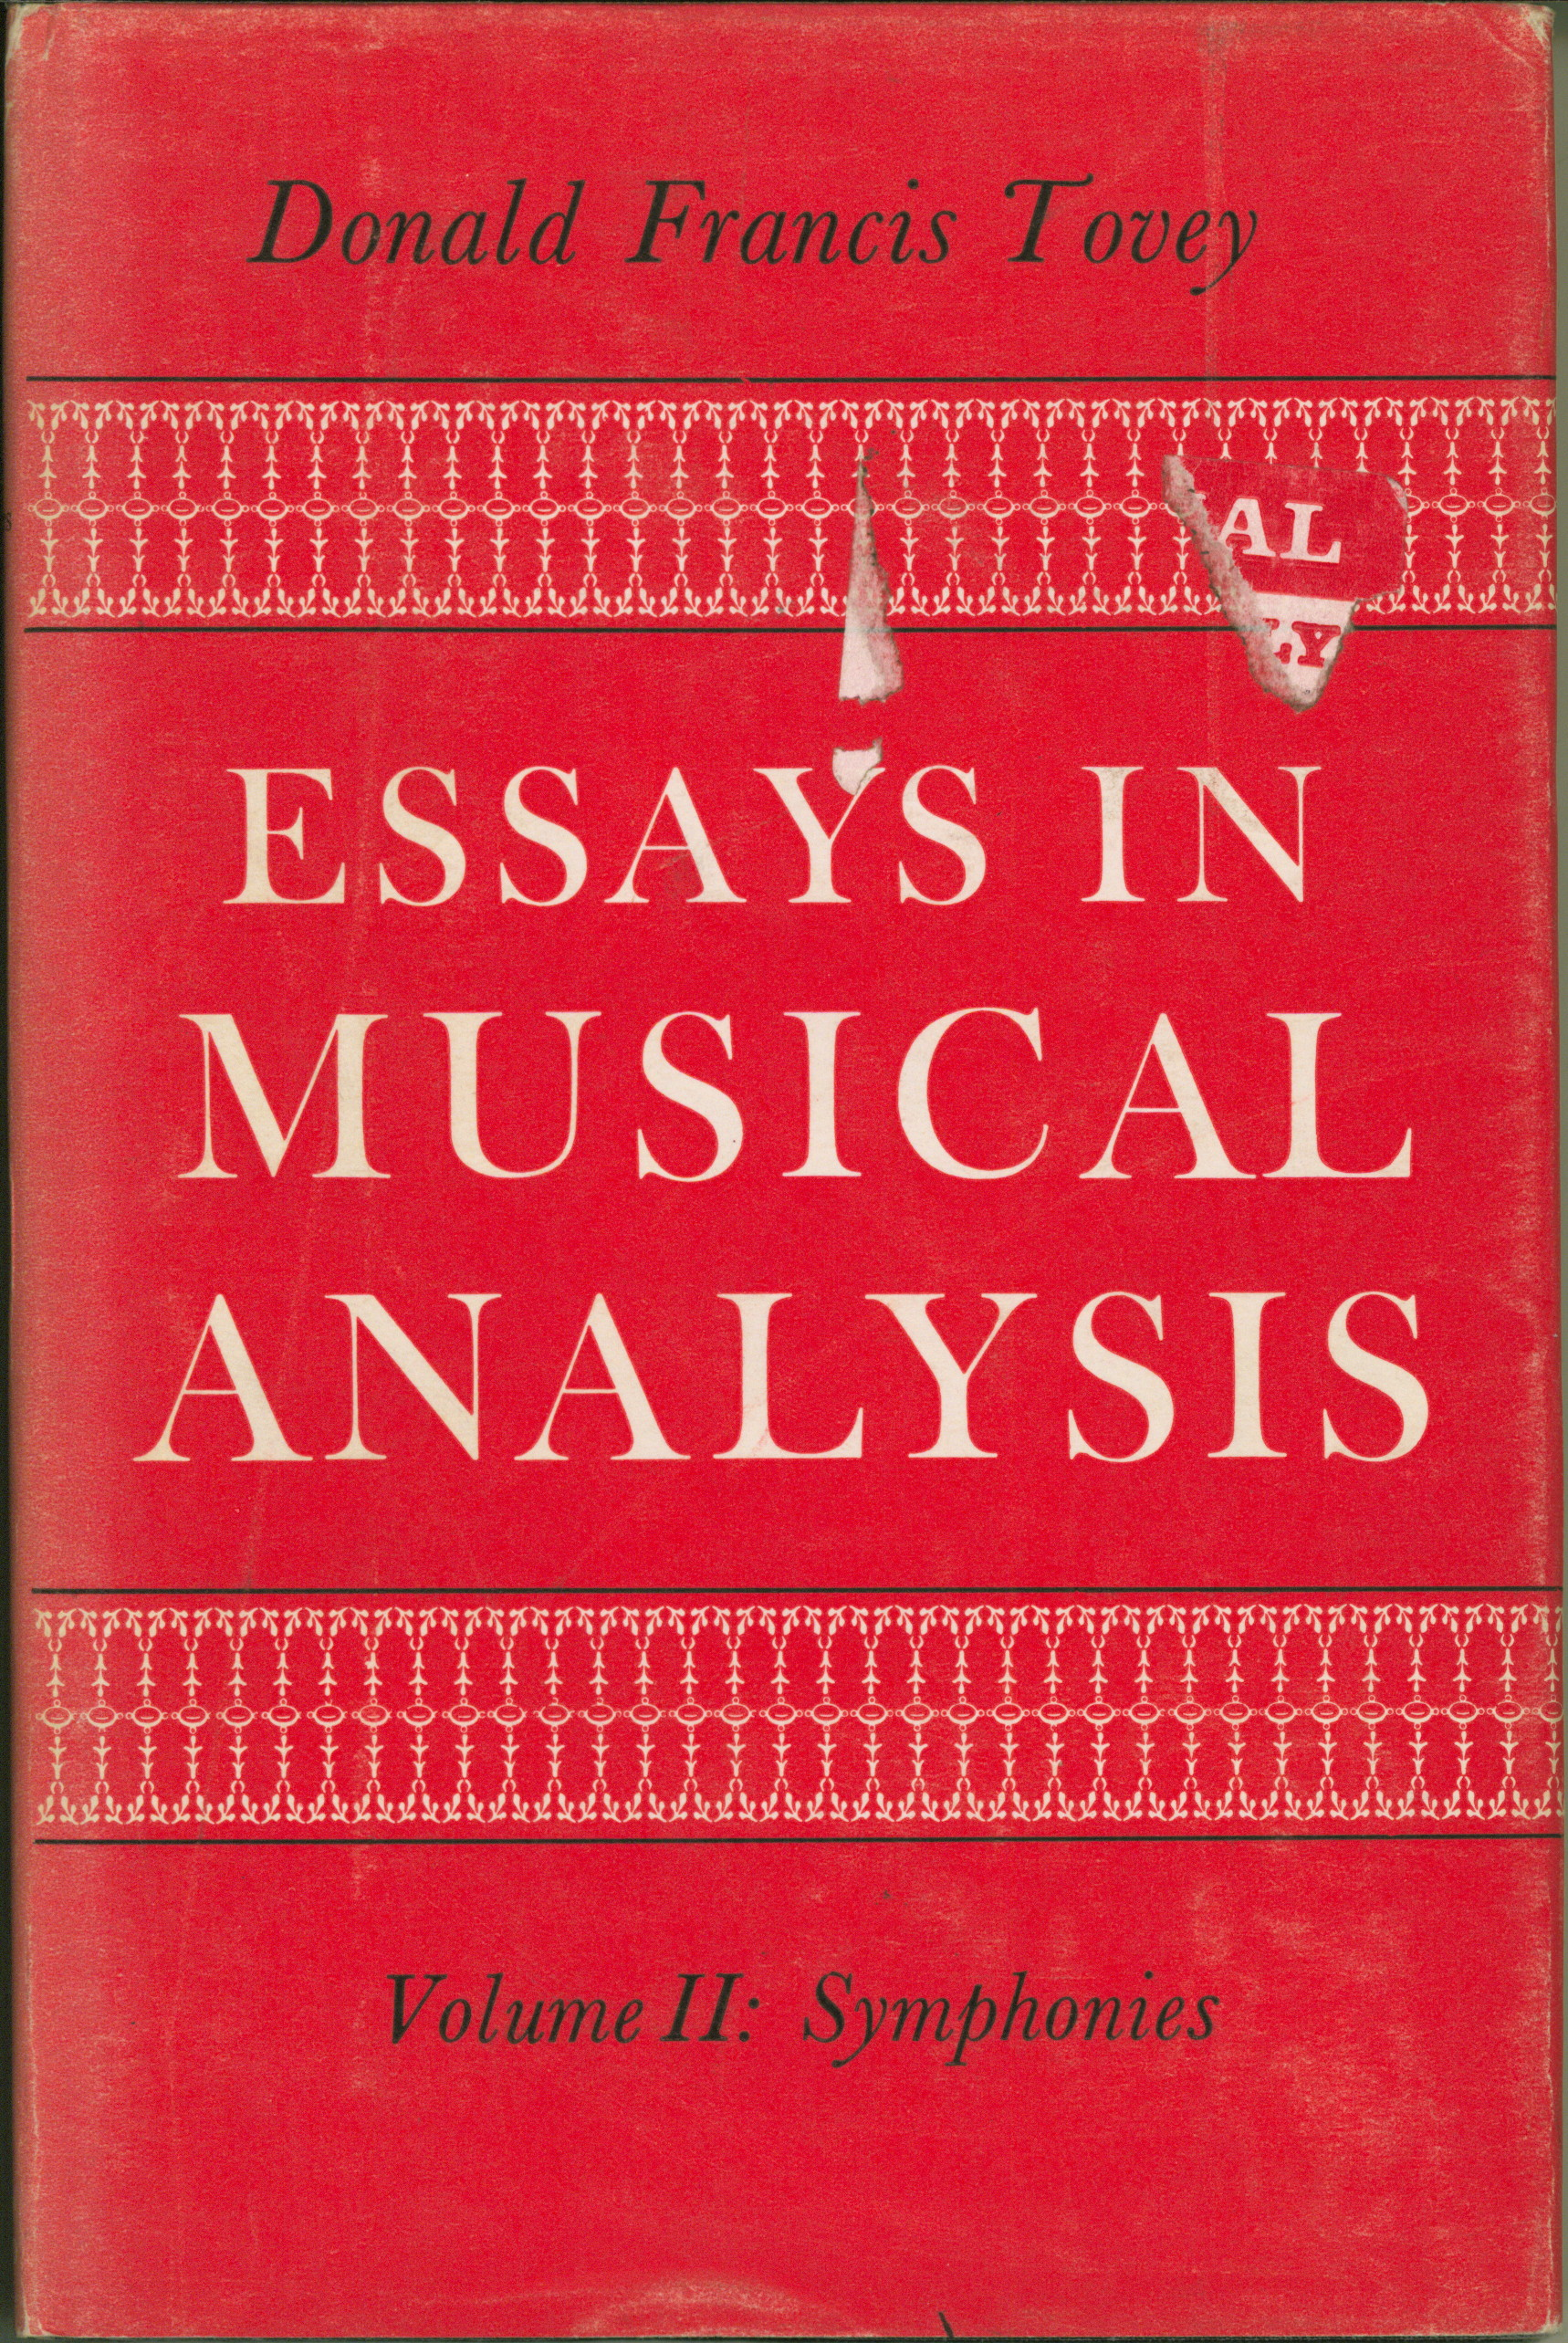 Tovey, Donald Francis - Essays In Musical Analysis Vols. I-VI. - (5707)